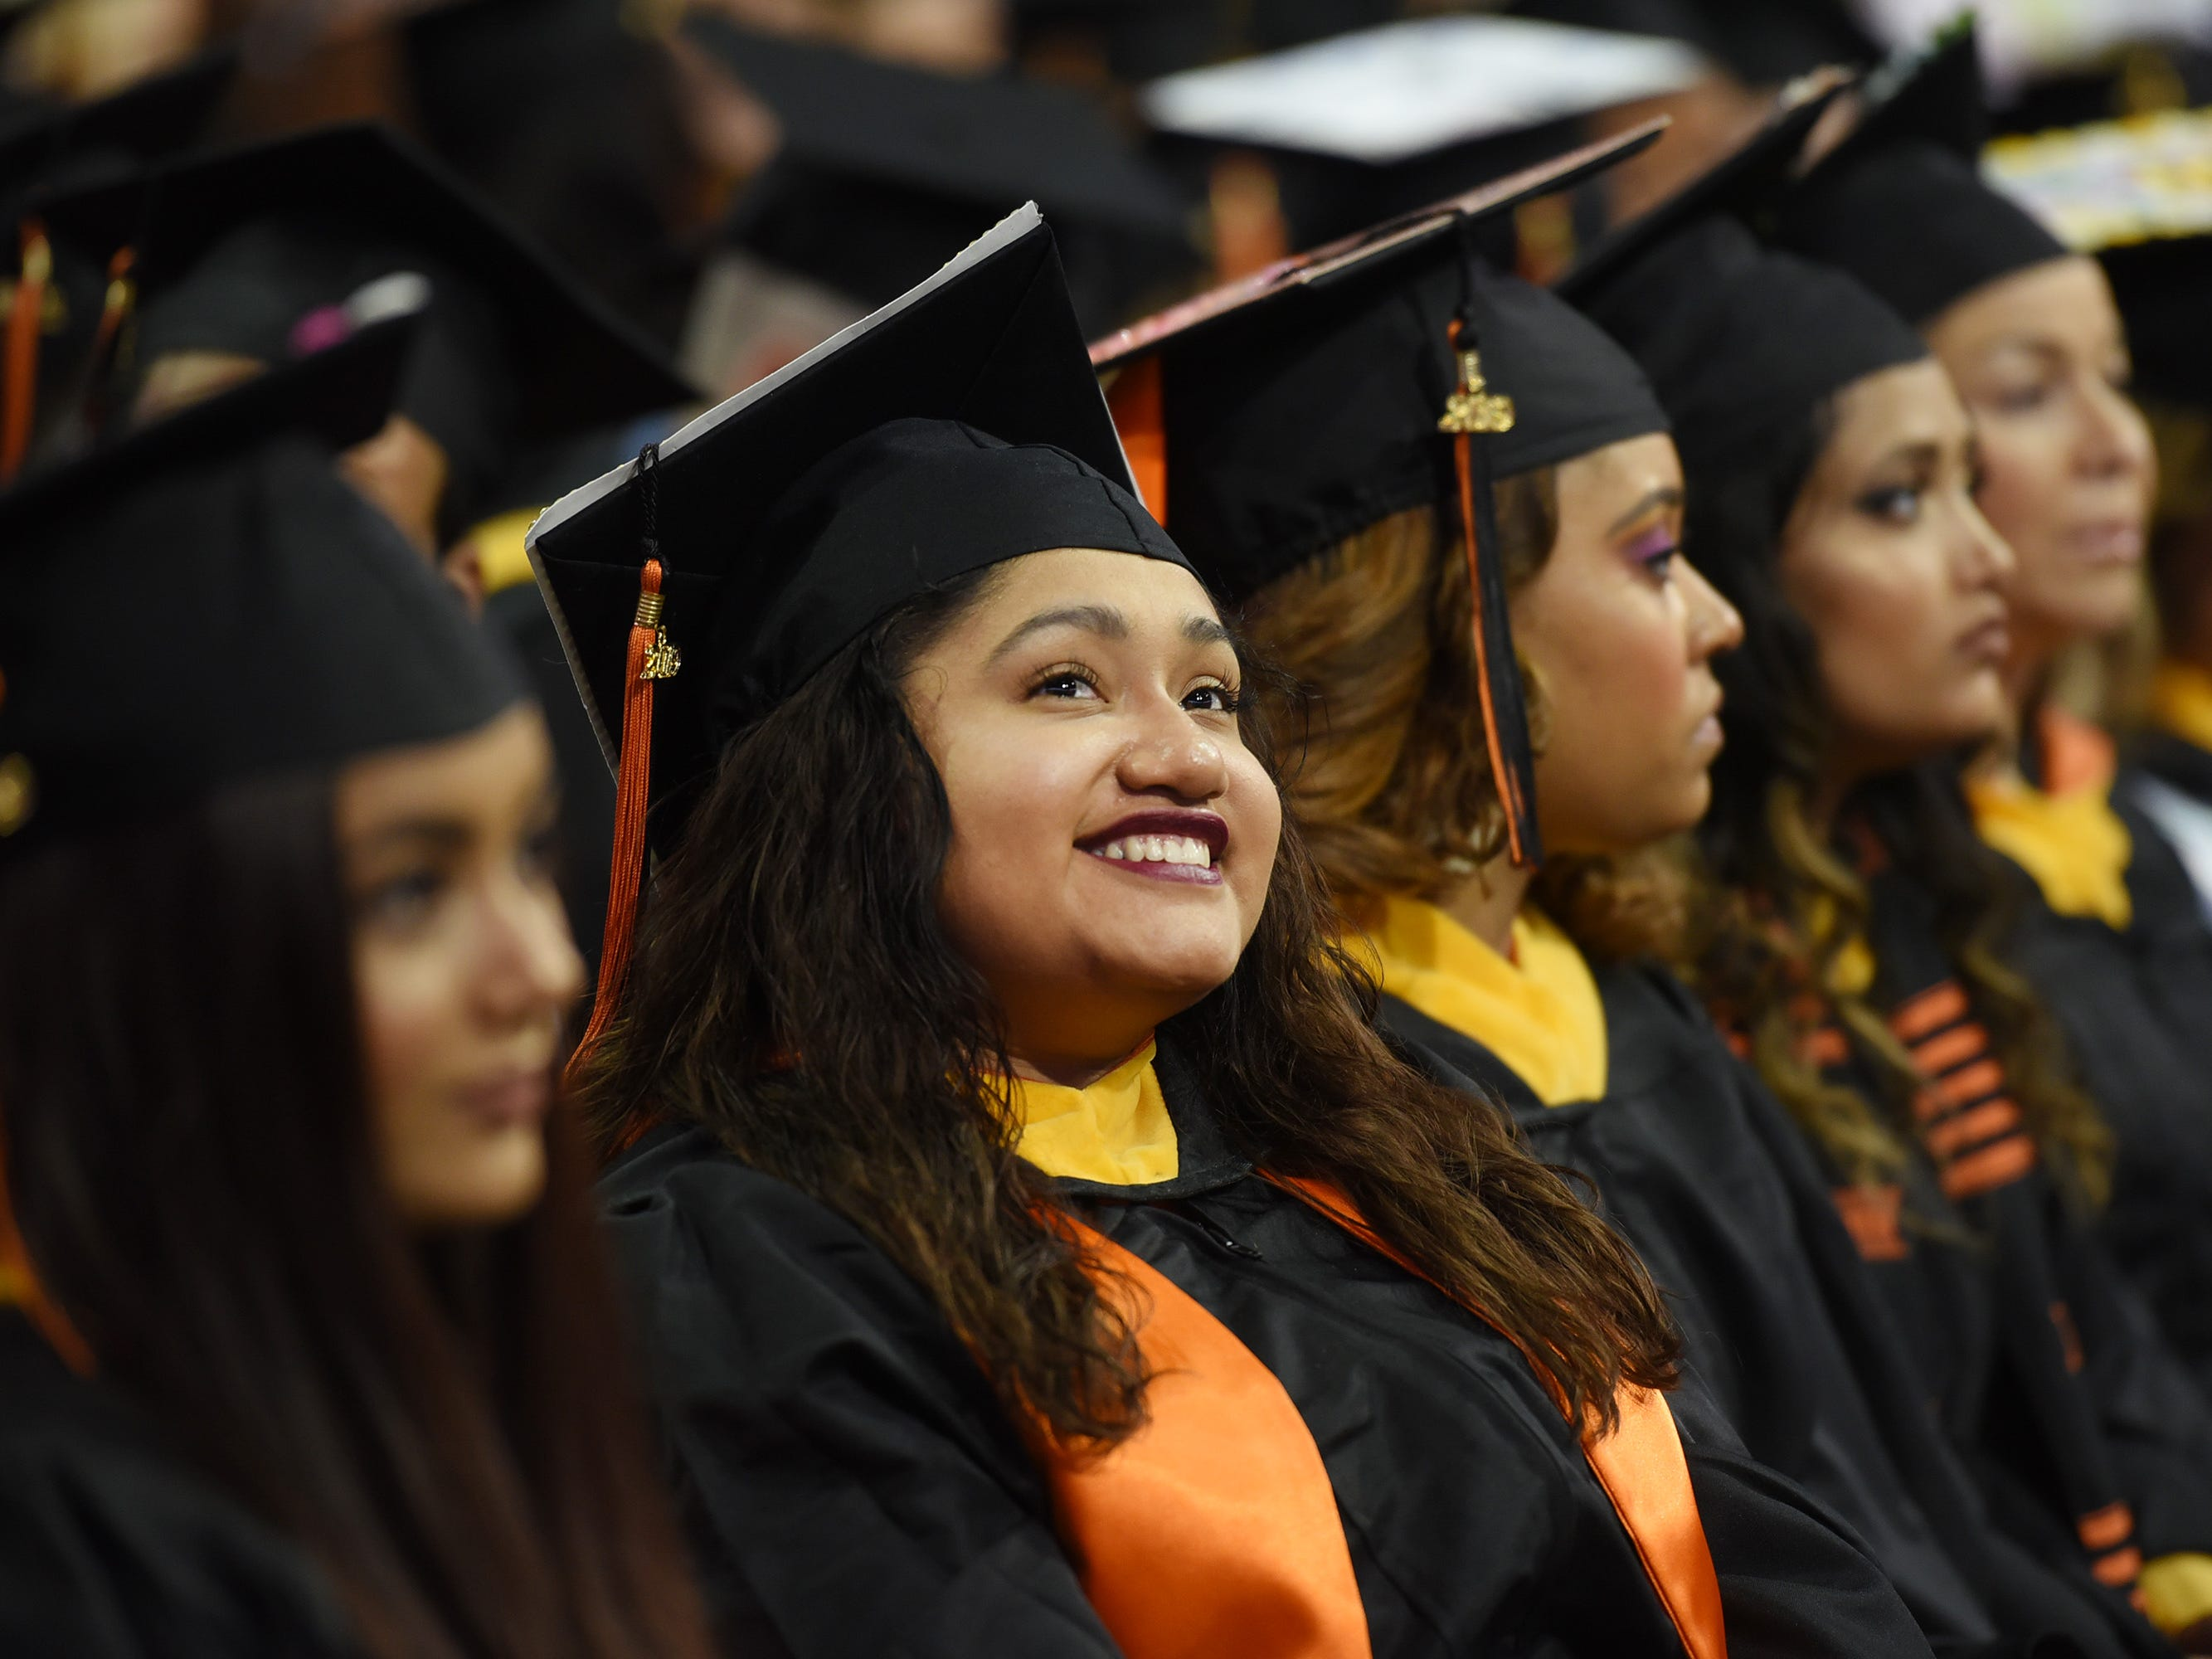 A graduate smiles during the William Paterson University 2019 Commencement at the Prudential Center in Newark on 05/15/19.